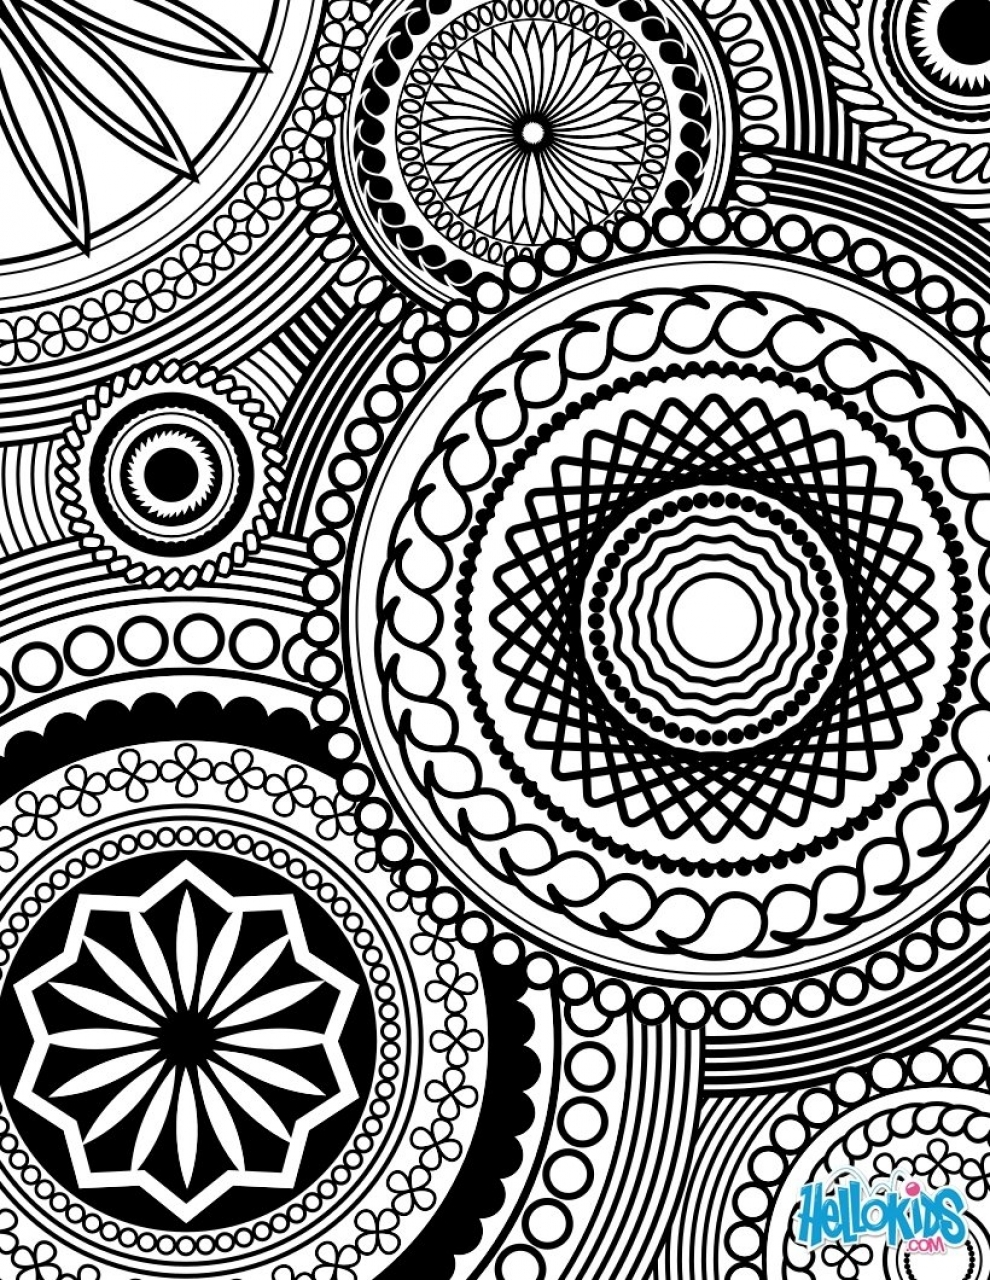 cool abstract coloring pages get this grown up coloring pages free printable 42032 abstract pages coloring cool